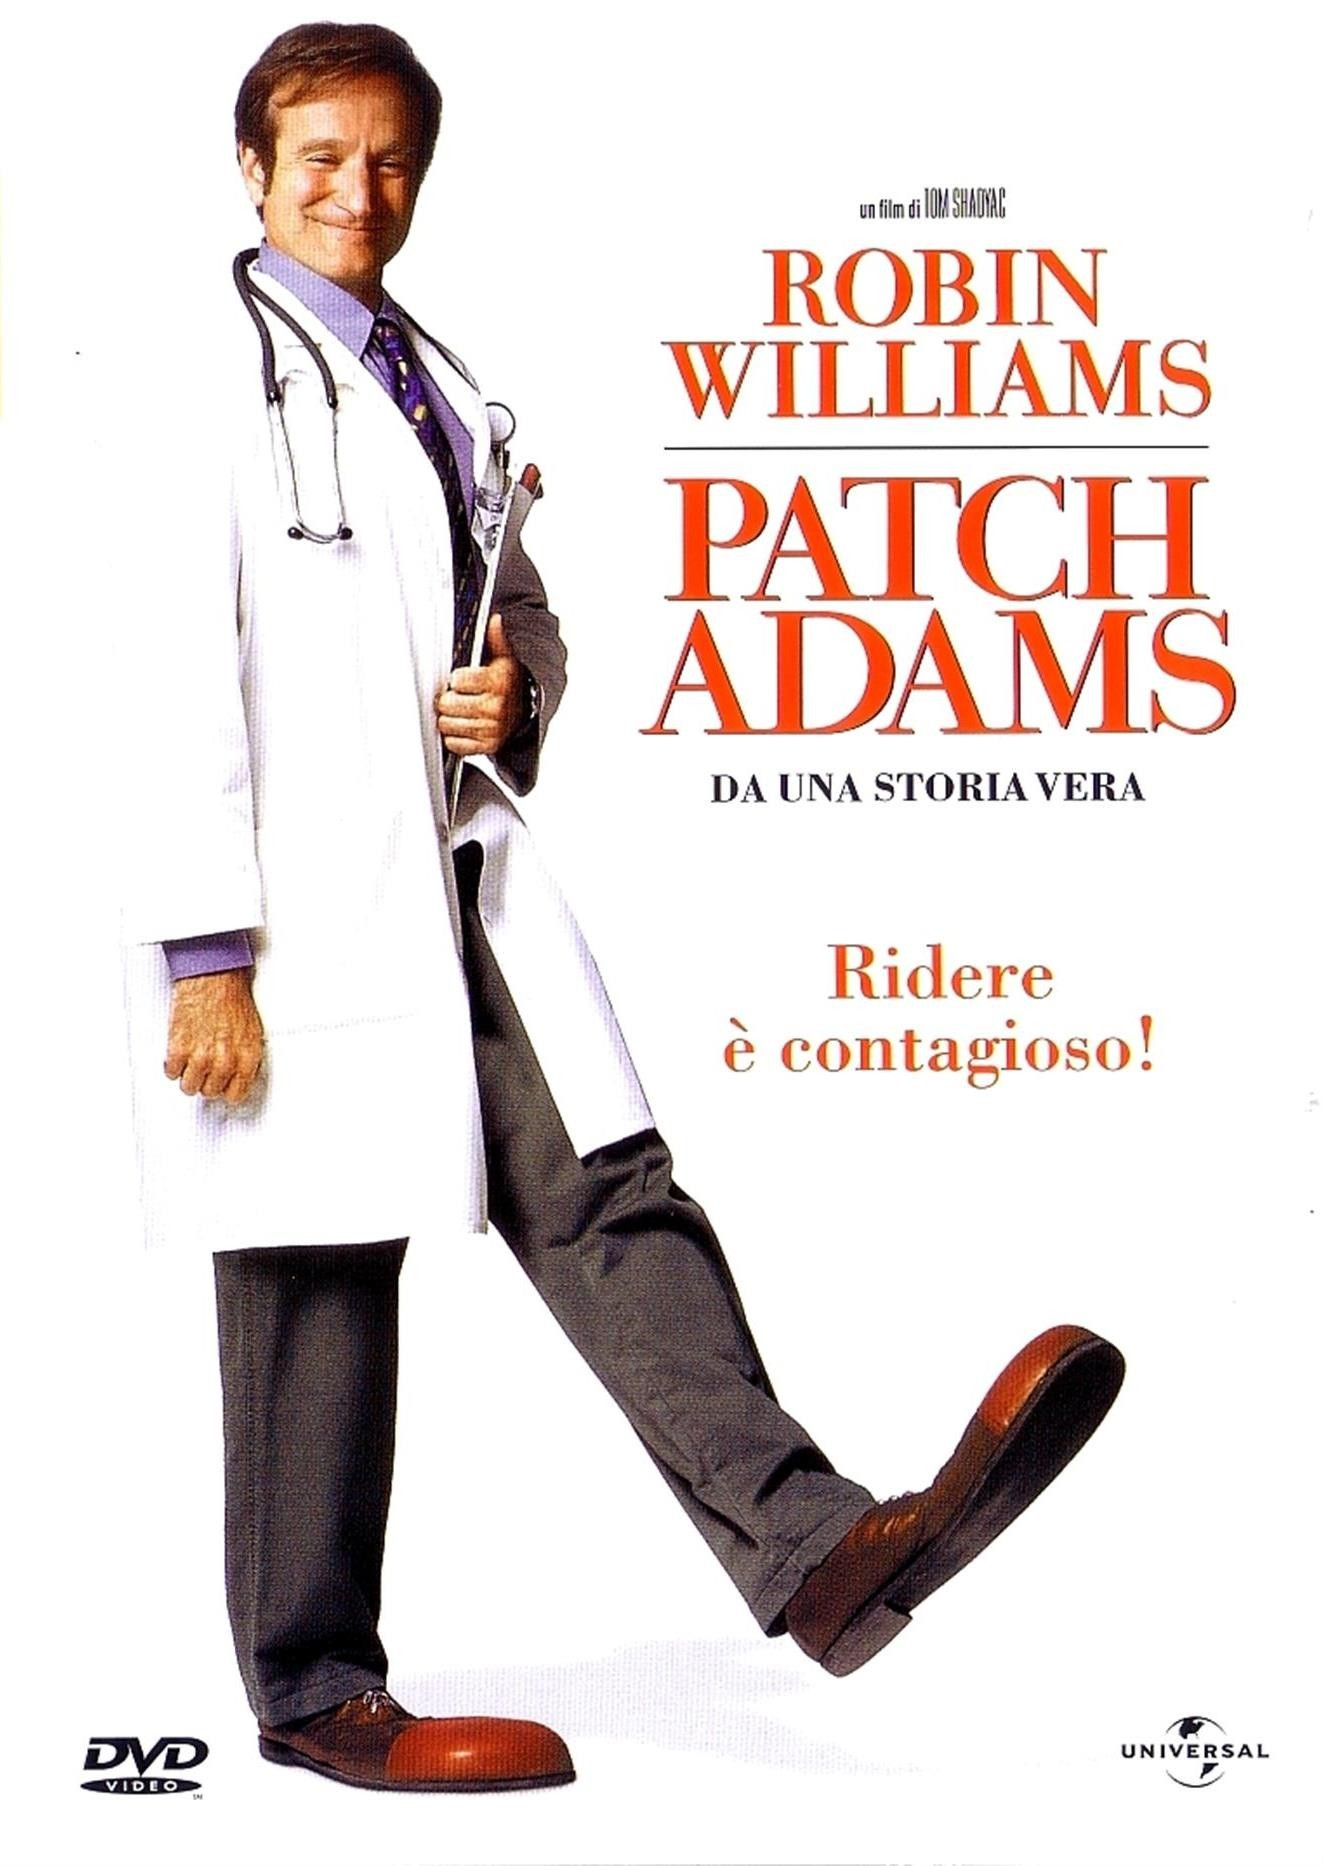 Frasi Del Film Patch Adams